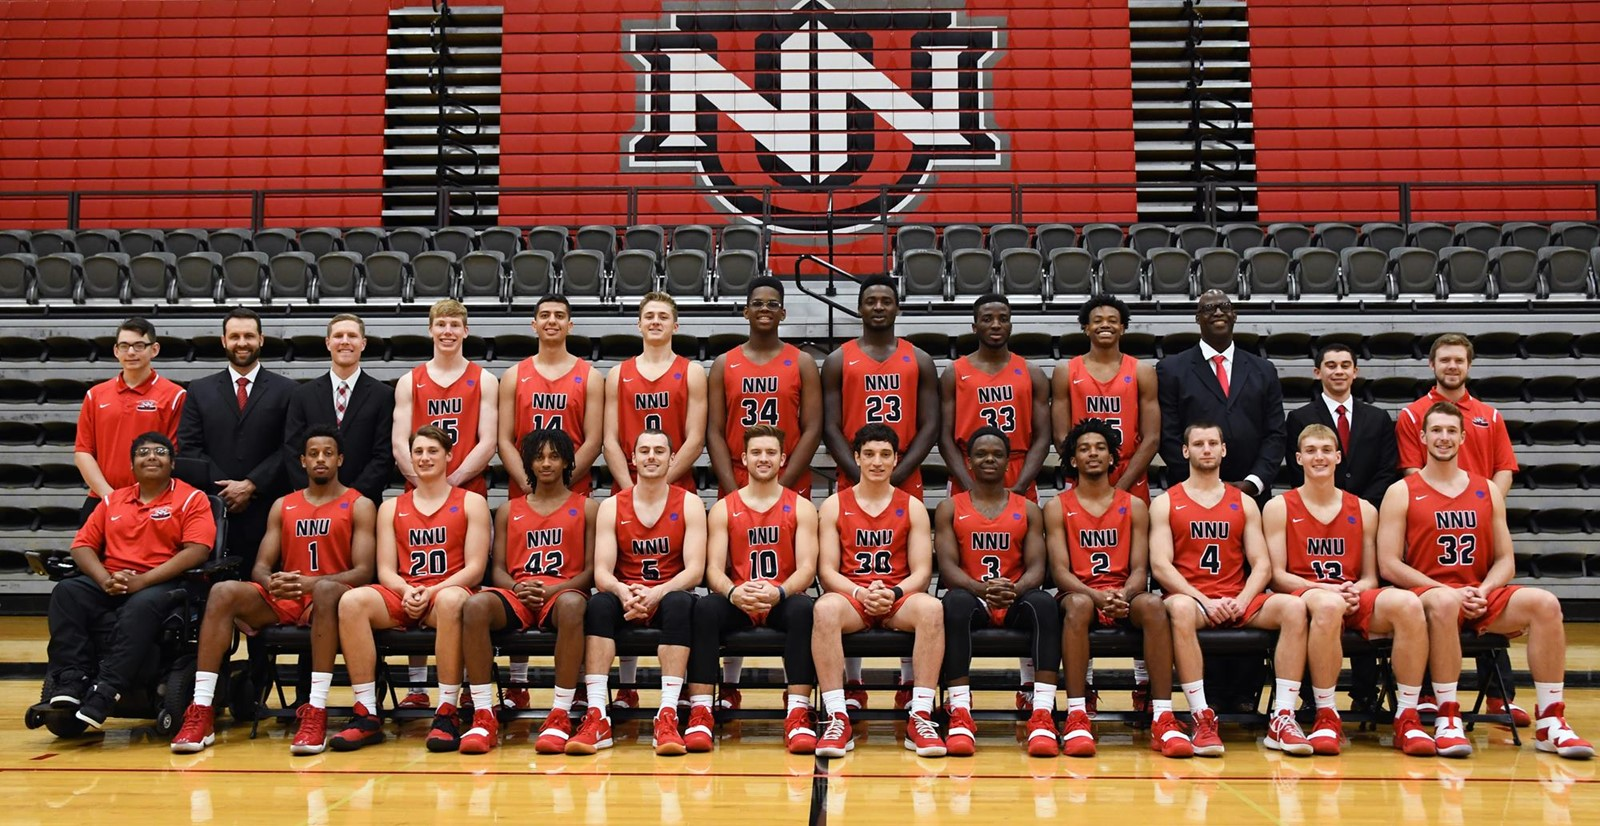 2018 19 men s basketball roster northwest nazarene university